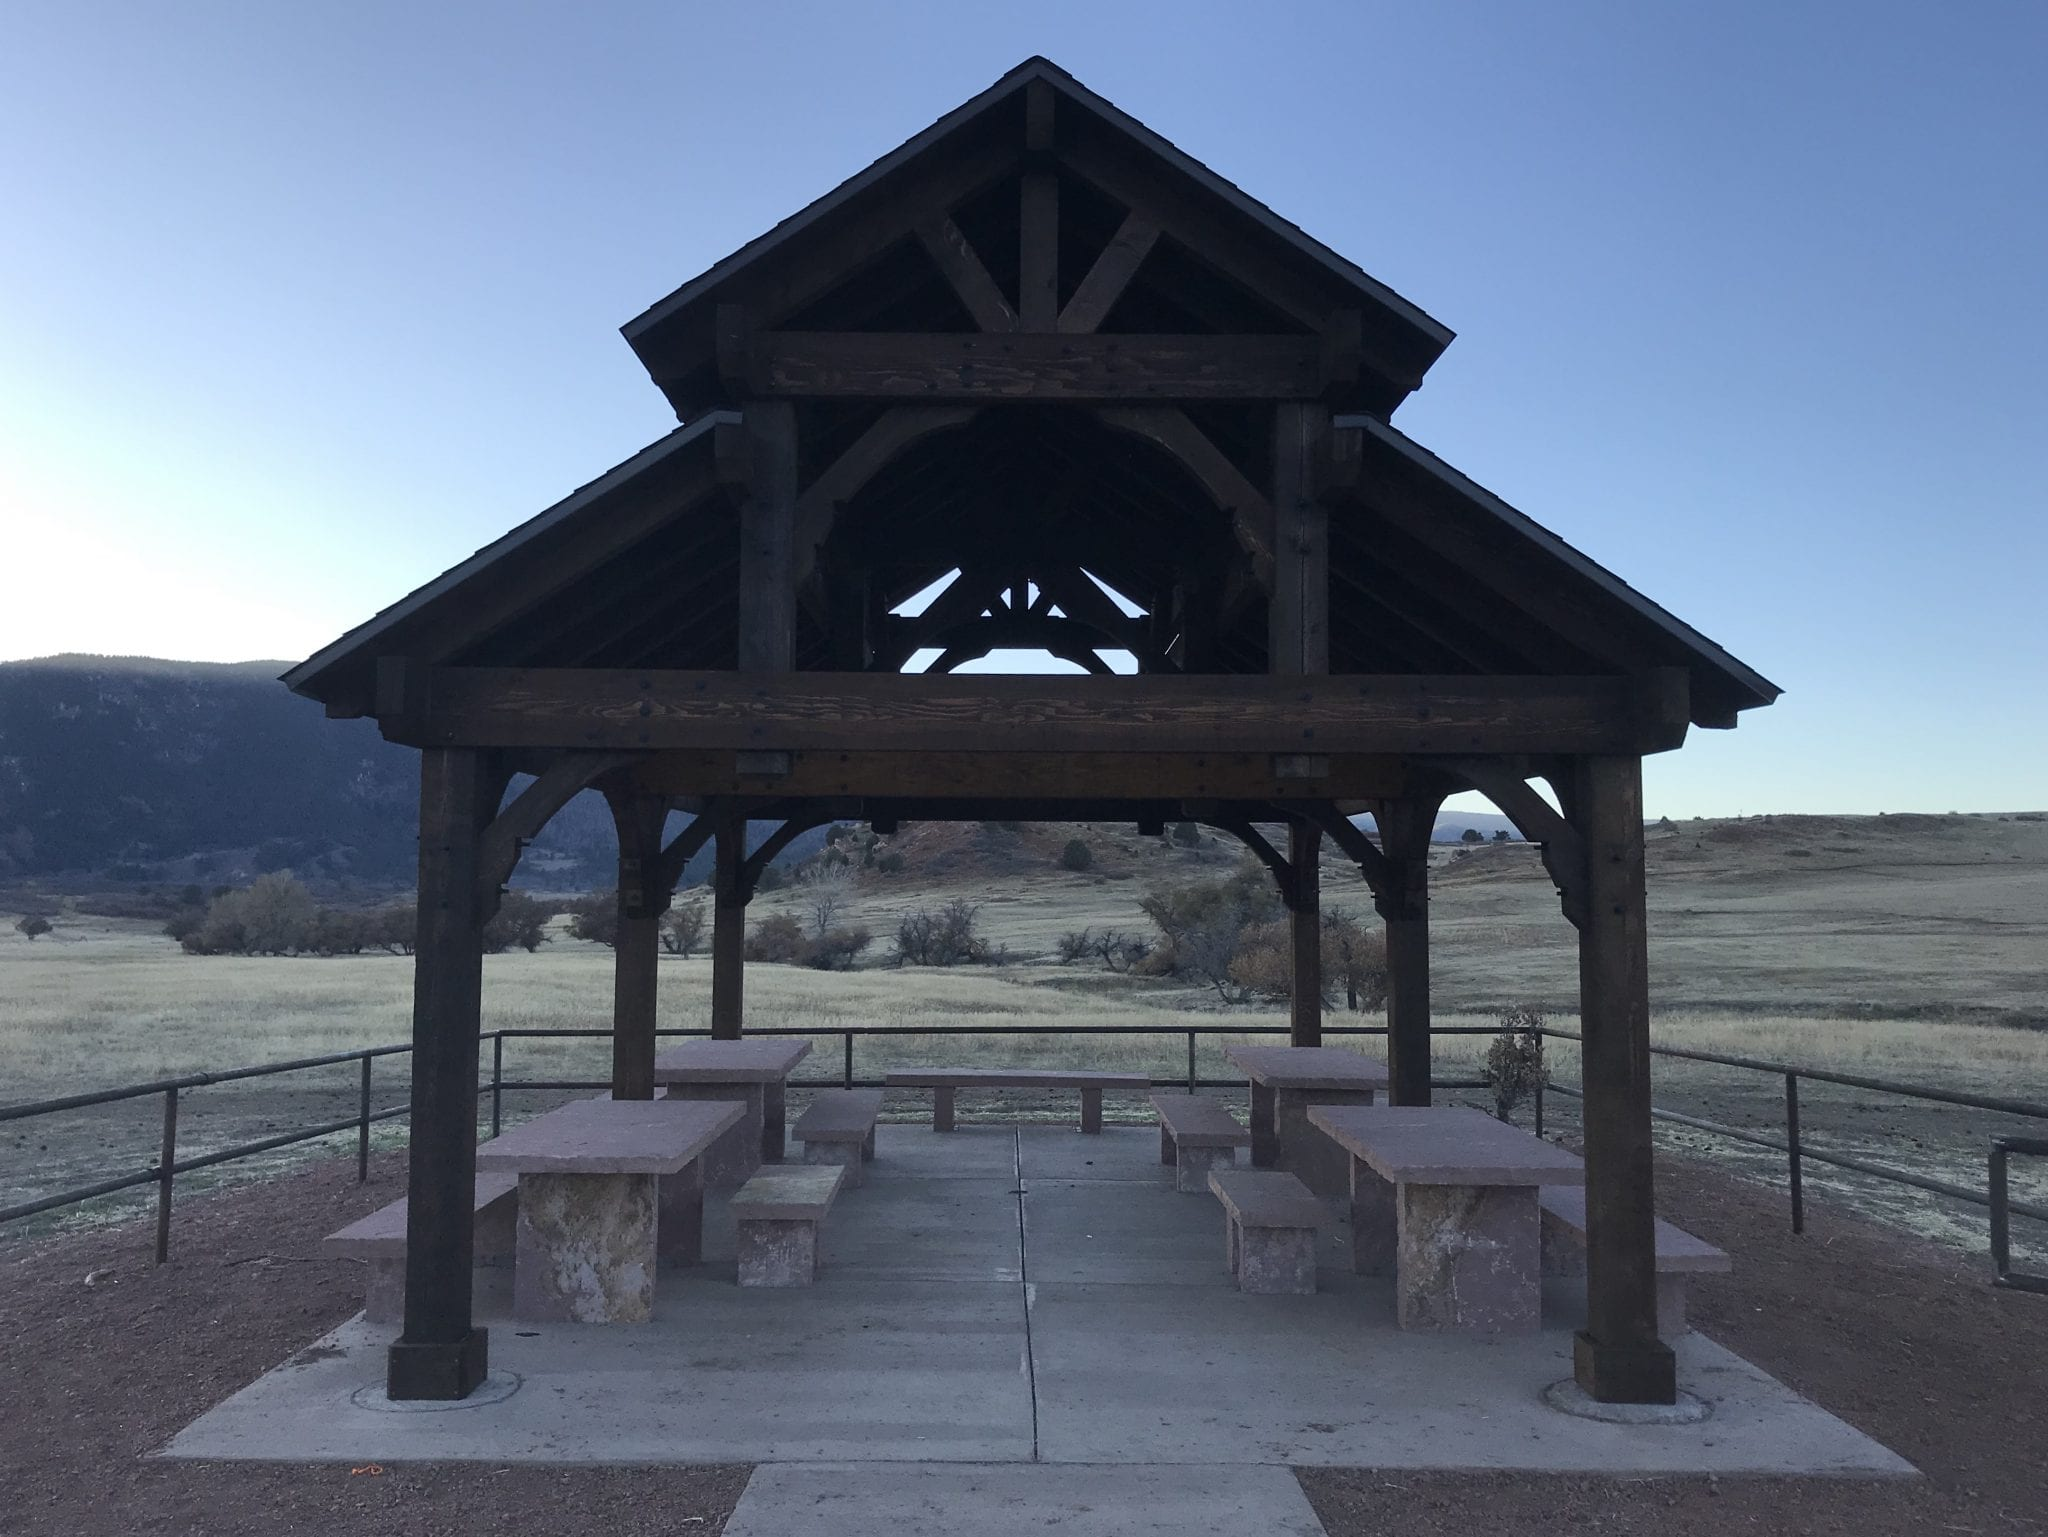 image of pavilion at sandstone ranch